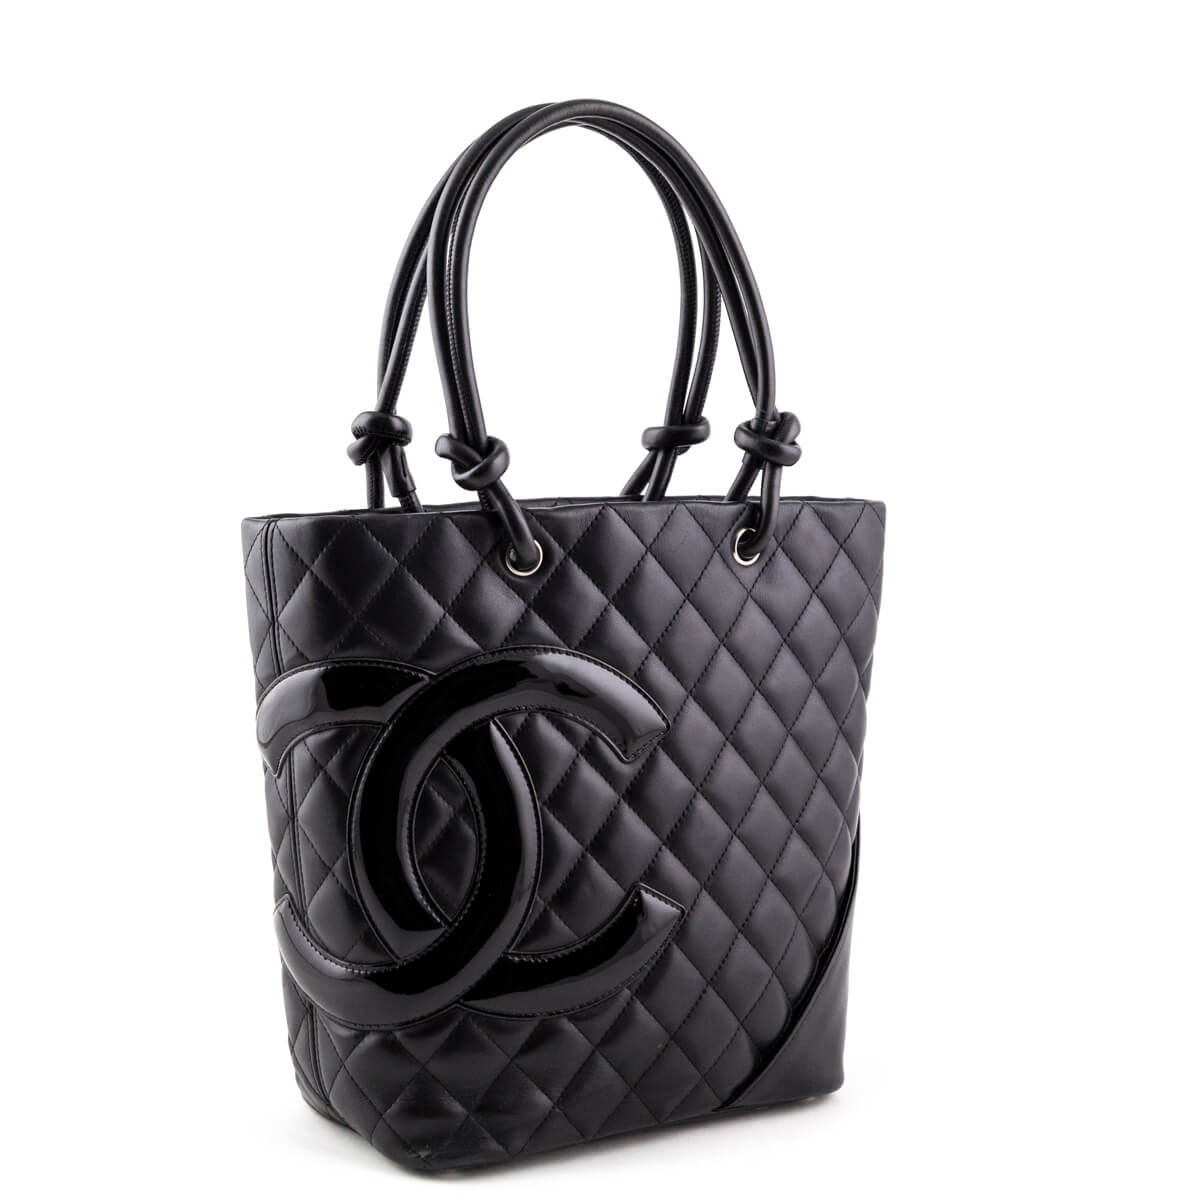 3be0b8fe5dd7 ... Chanel Black Lambskin Small Cambon Tote - LOVE that BAG - Preowned  Authentic Designer Handbags ...